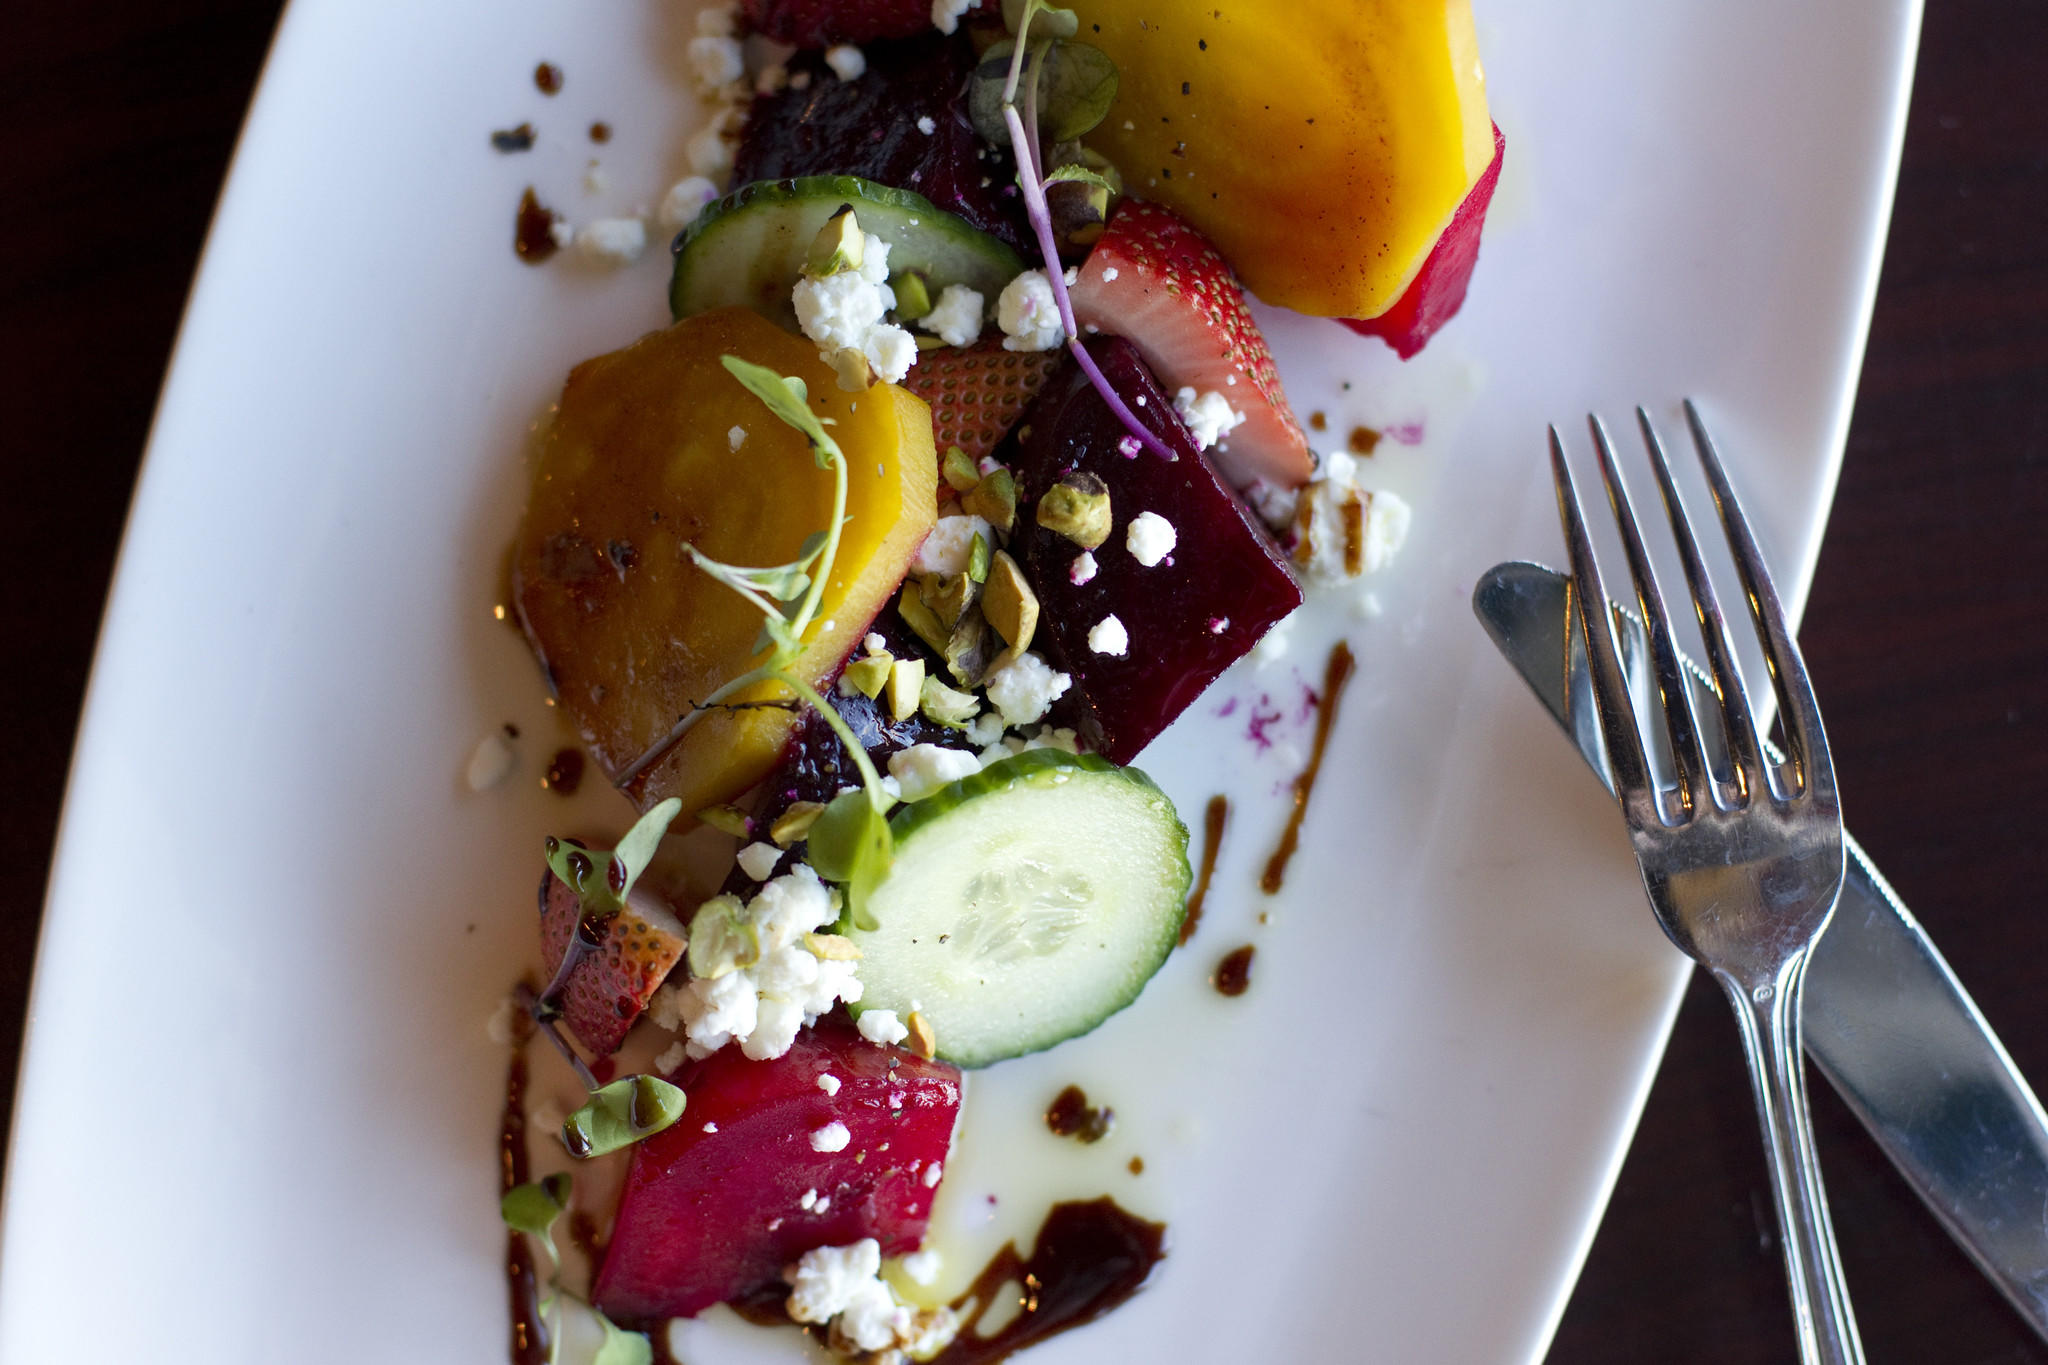 Roasted beets and goat cheese with pomegranate molasses and fennel salt at Lib's Grill in Perry Hall, MD on Wednesday, April 16, 2014.